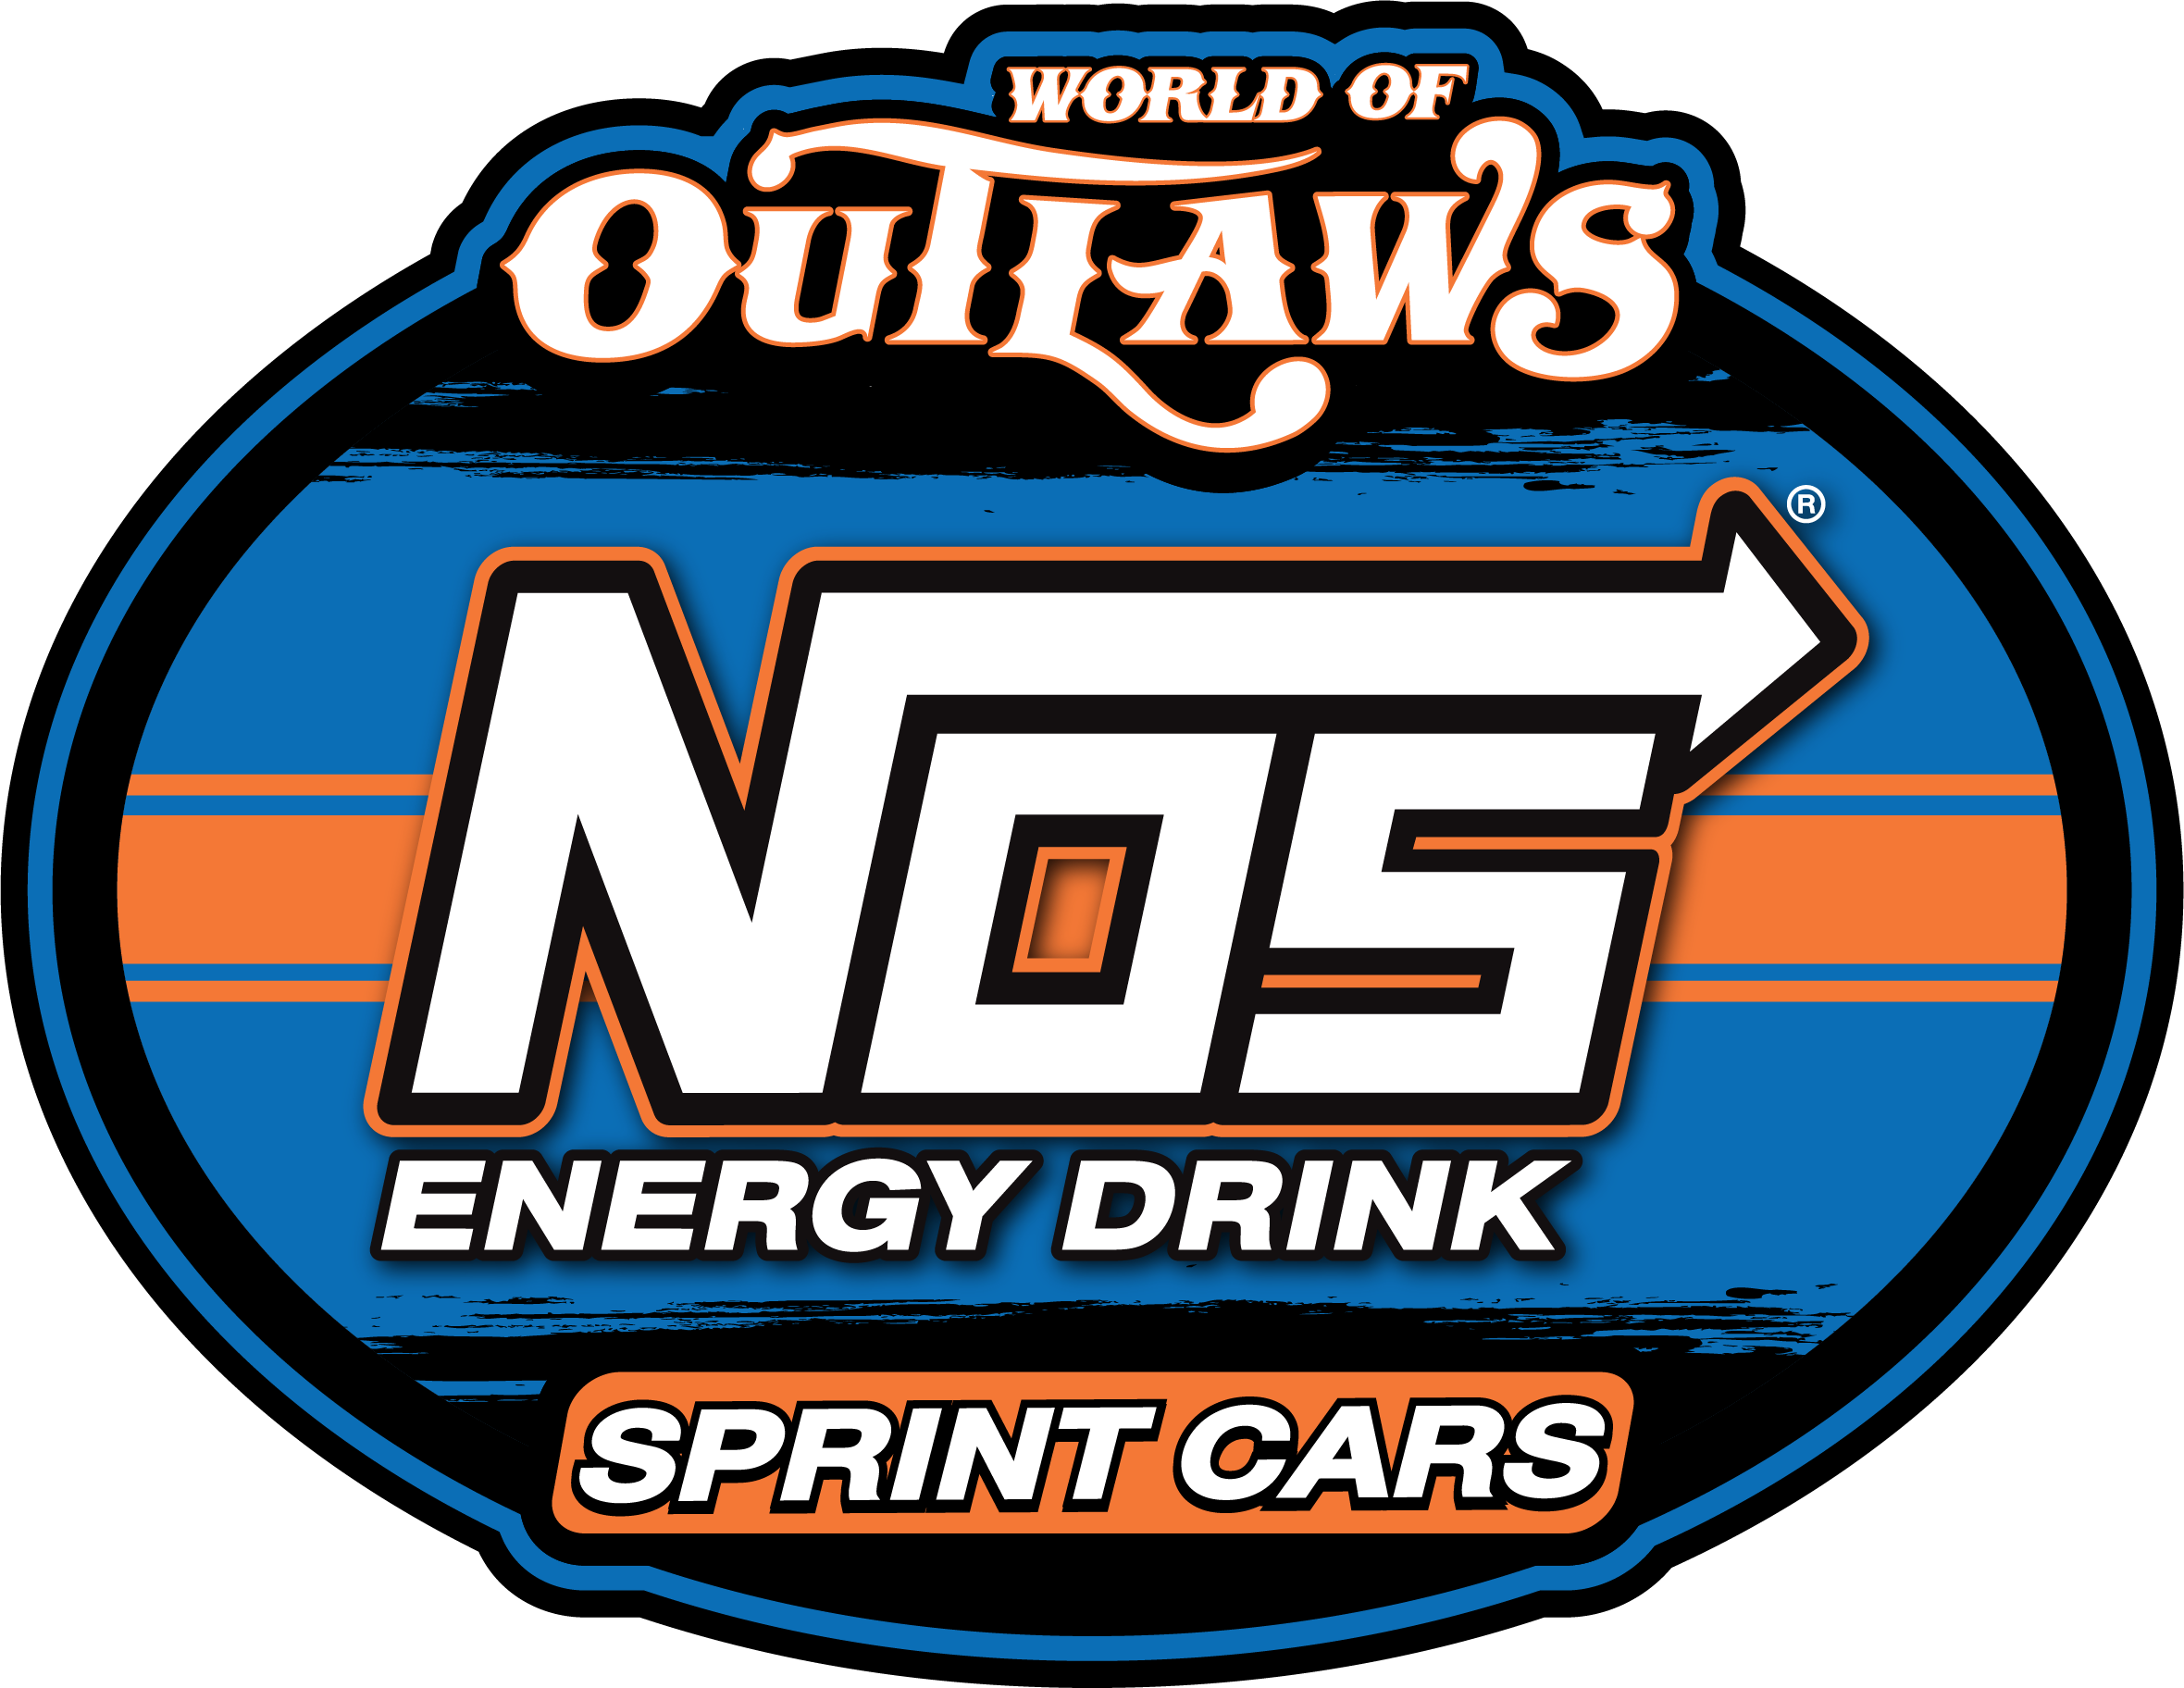 2019 world of outlaws nos energy drink sprint car series